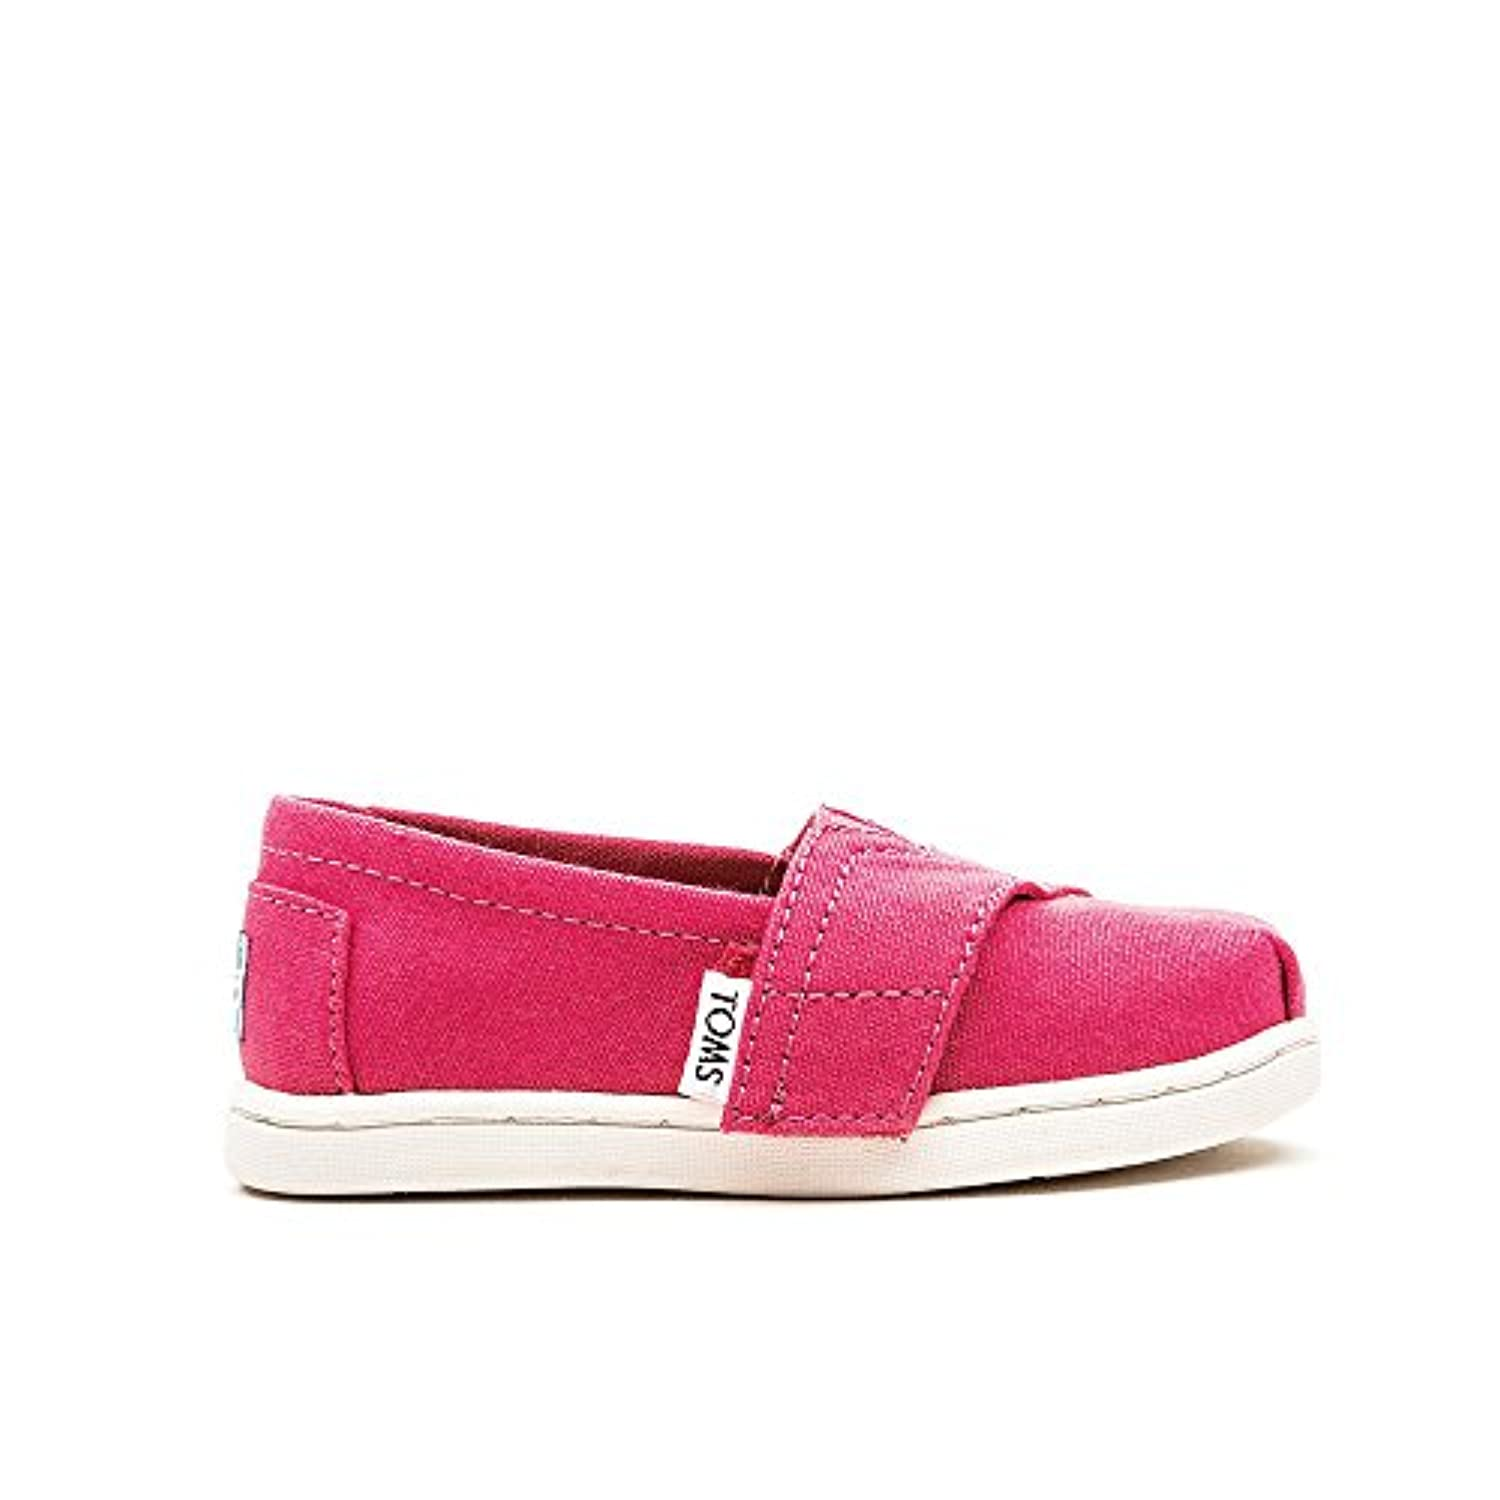 Toms Classic Casual Shoe